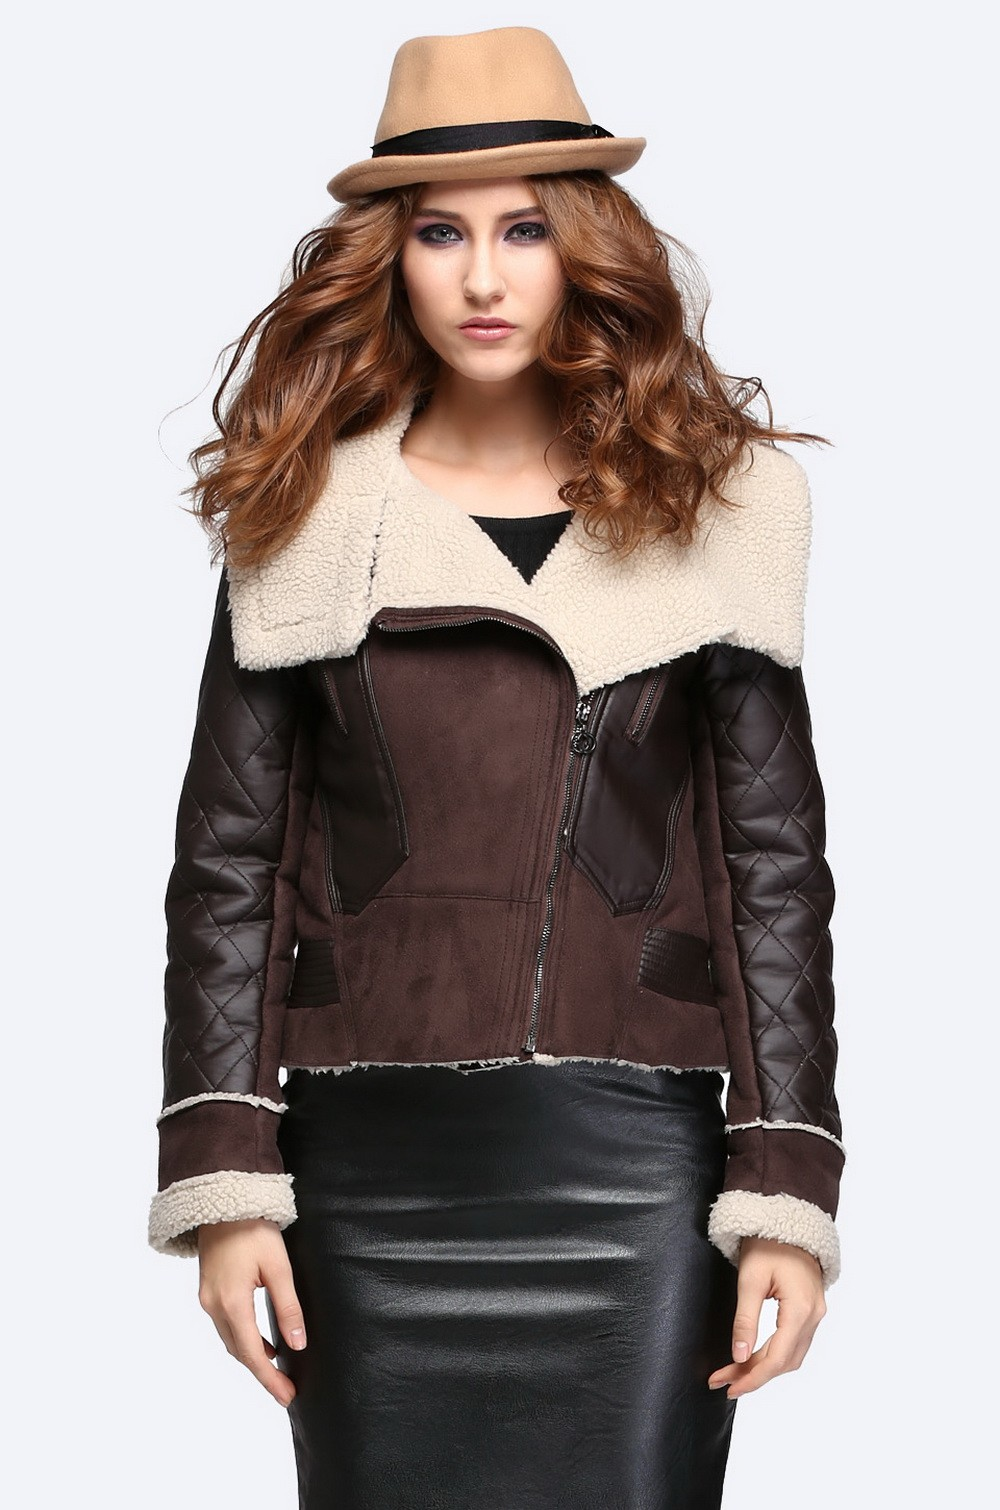 Compare Prices on Vintage Shearling Jacket- Online Shopping/Buy ...